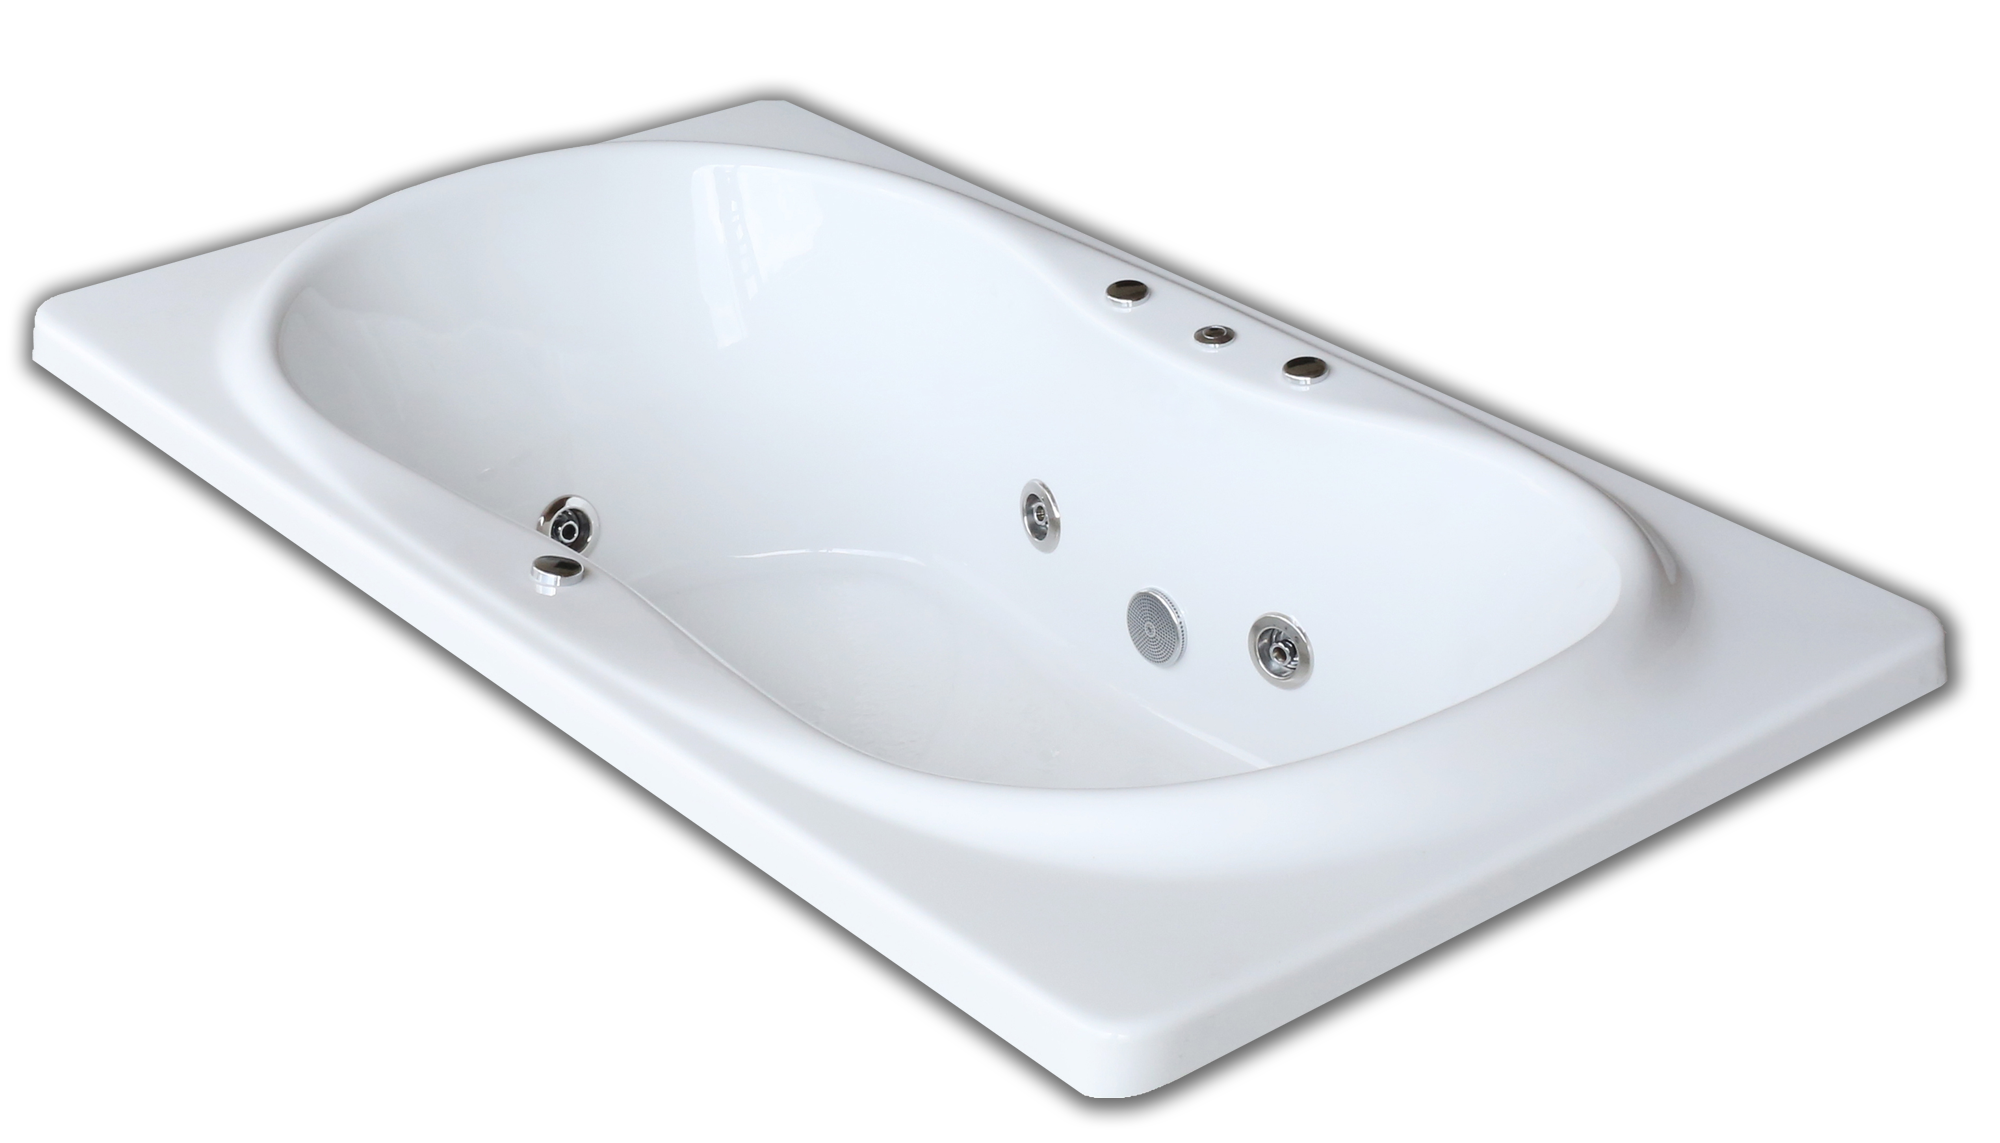 Signature Oasis Whirlpool Bath